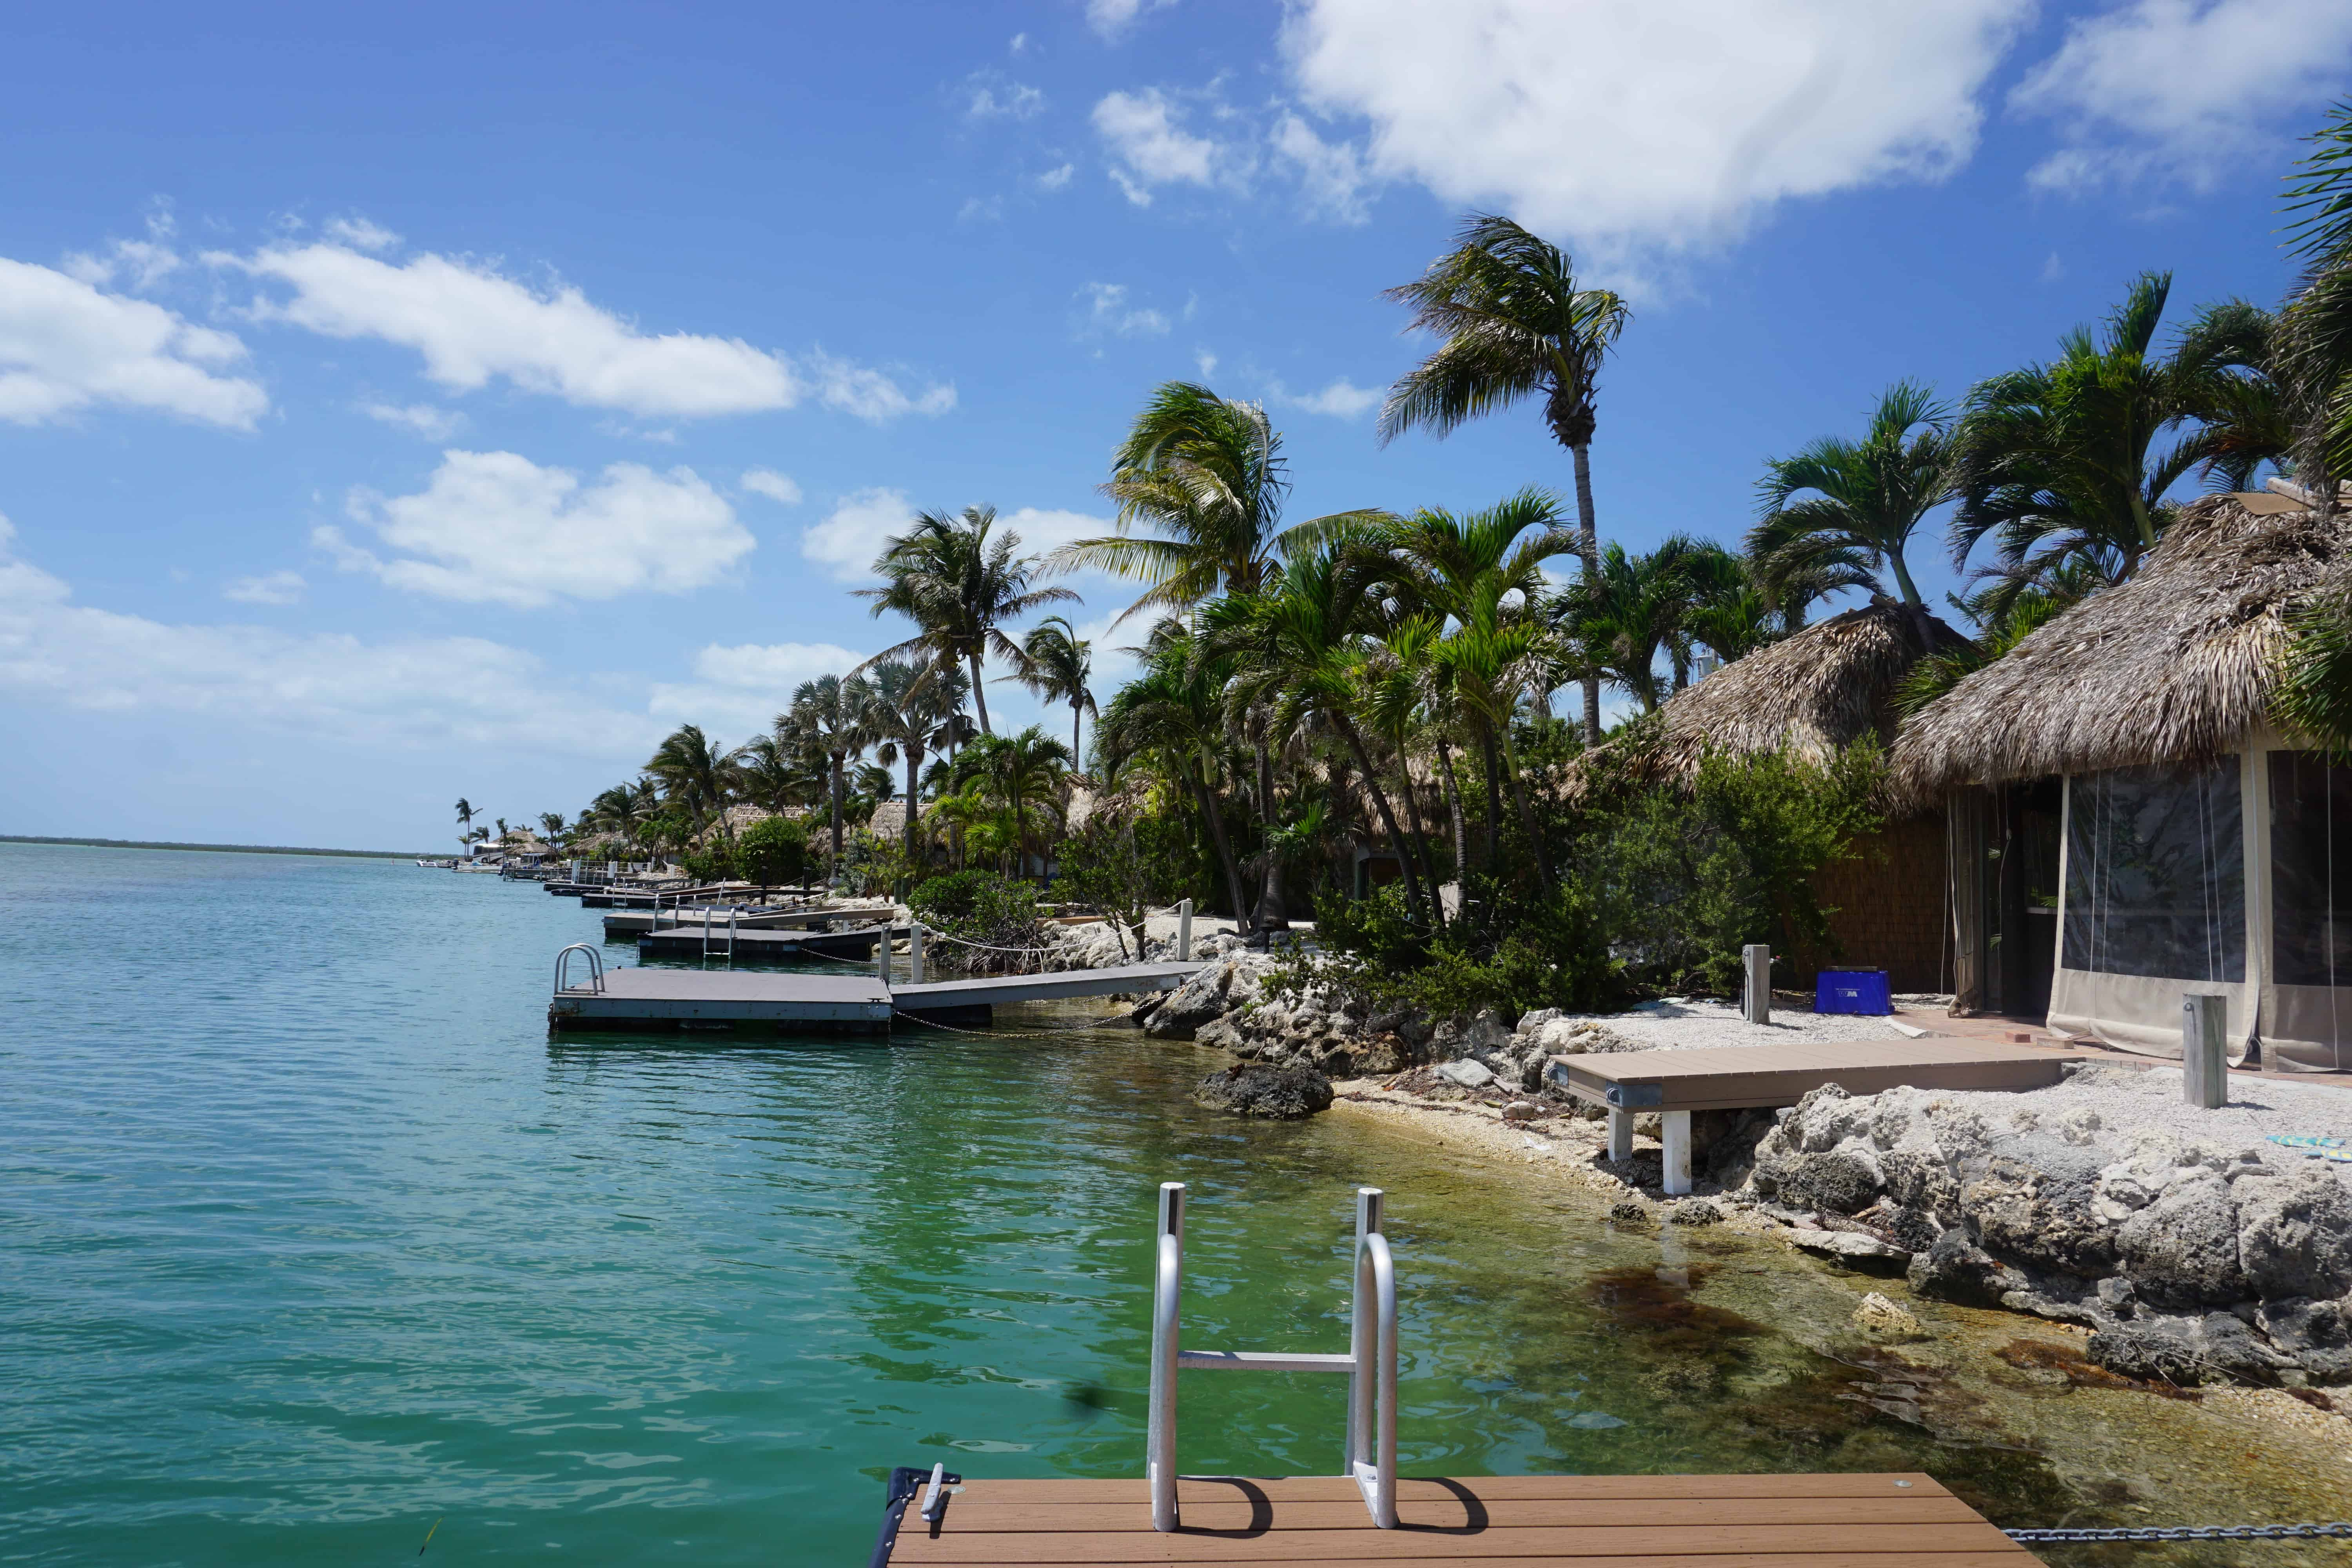 Staying in an RV in Key West at the Bluewater Key RV Resort